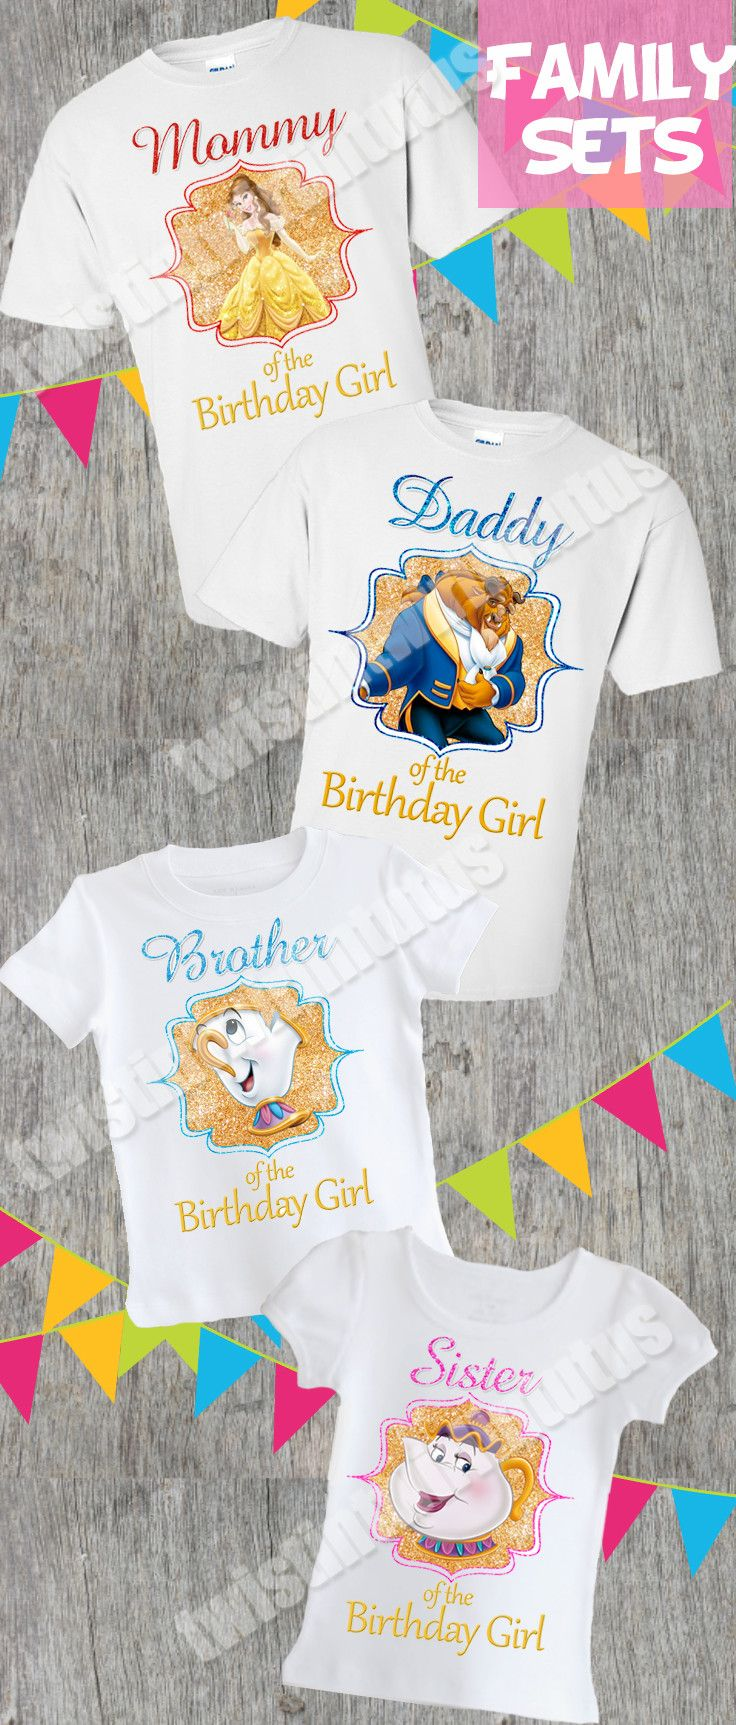 Beauty and the Beast Family Shirts | Beauty and the Beast Birthday Shirt | Beauty and the Beast Birthday Party | Beauty and the Beast Party | Princess Belle Birthday Party | Belle Birthday Party | Birthday Ideas for Girls | Twistin Twirlin Tutus #beautyandthebeastbirthday